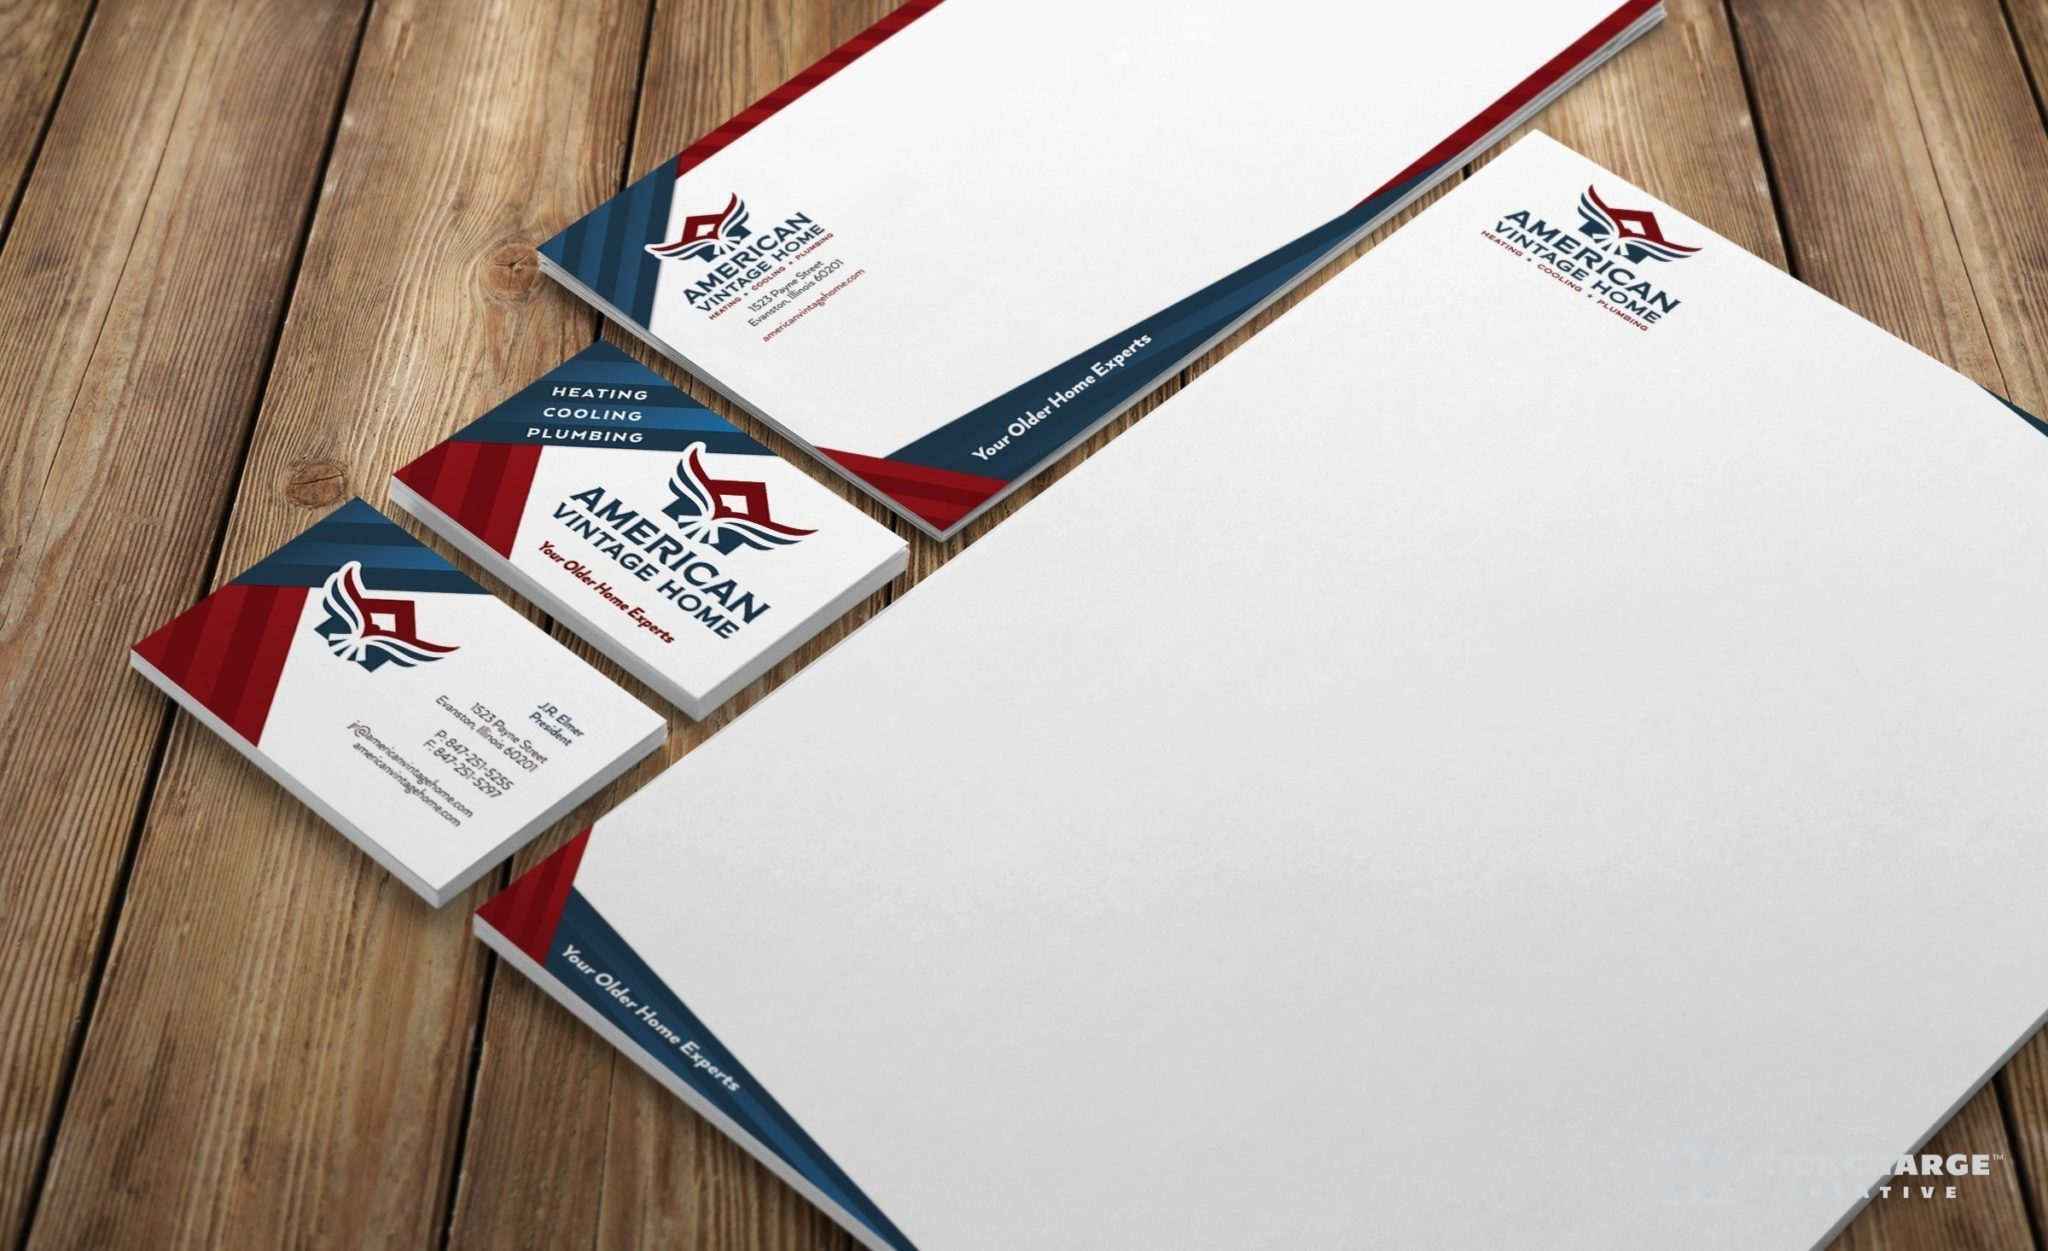 Stationery design for American Vintage Home, an Illinois-based HVAC contractor.